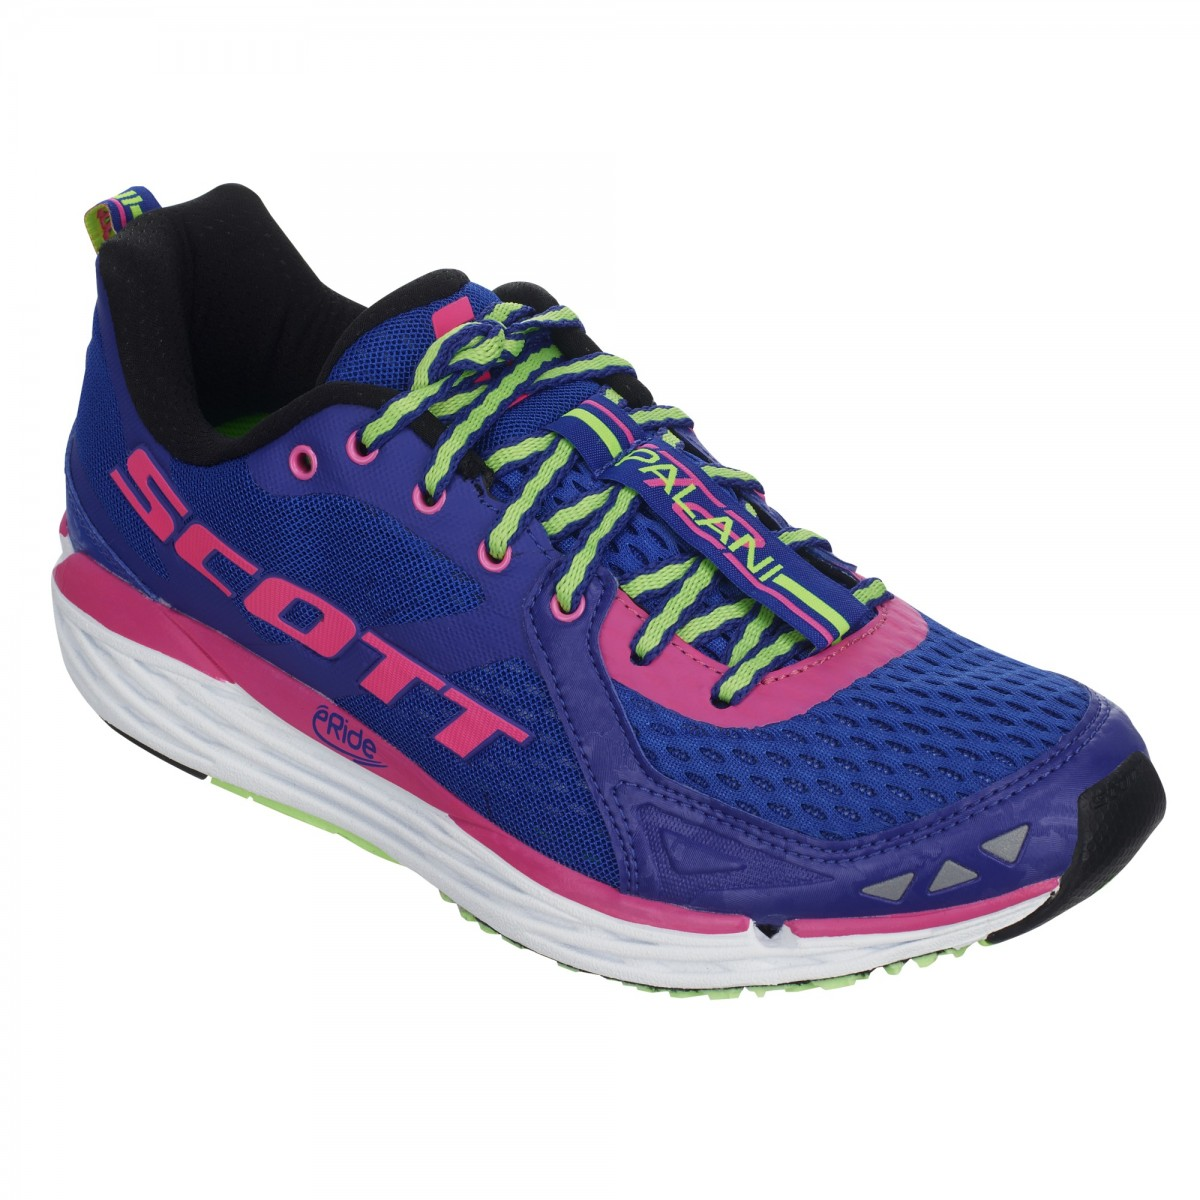 new style 6cf50 a62f6 T2 Palani scarpe running donna Blue/rosa